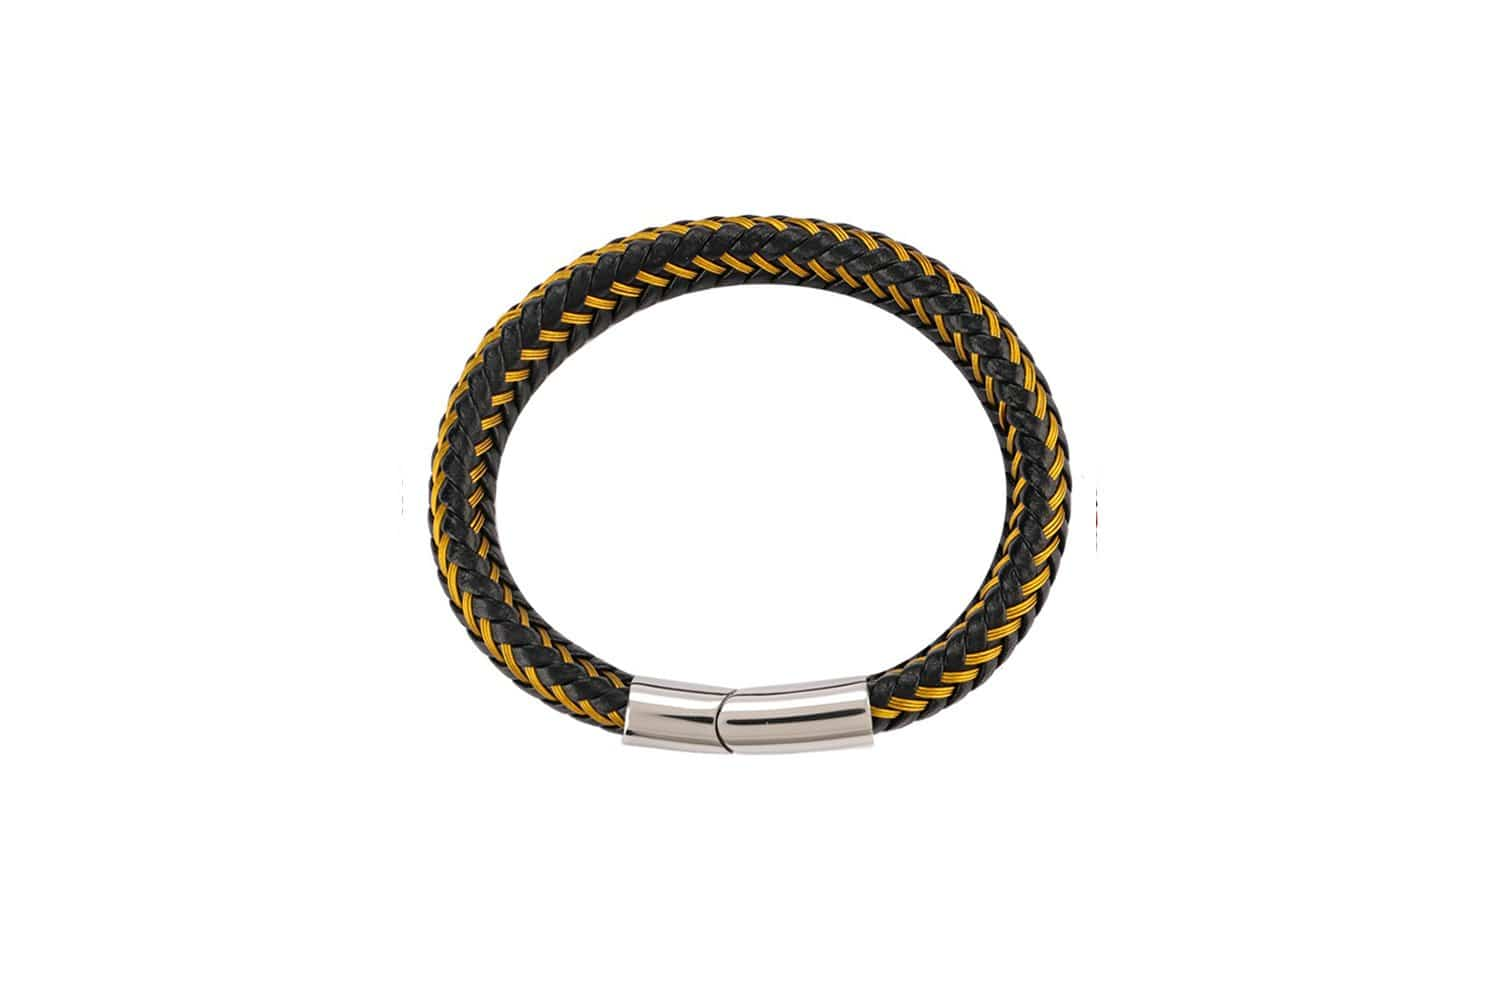 Multi-Strand Woven Leather Bracelet - Yellow Bracelets - Urban State Indonesia